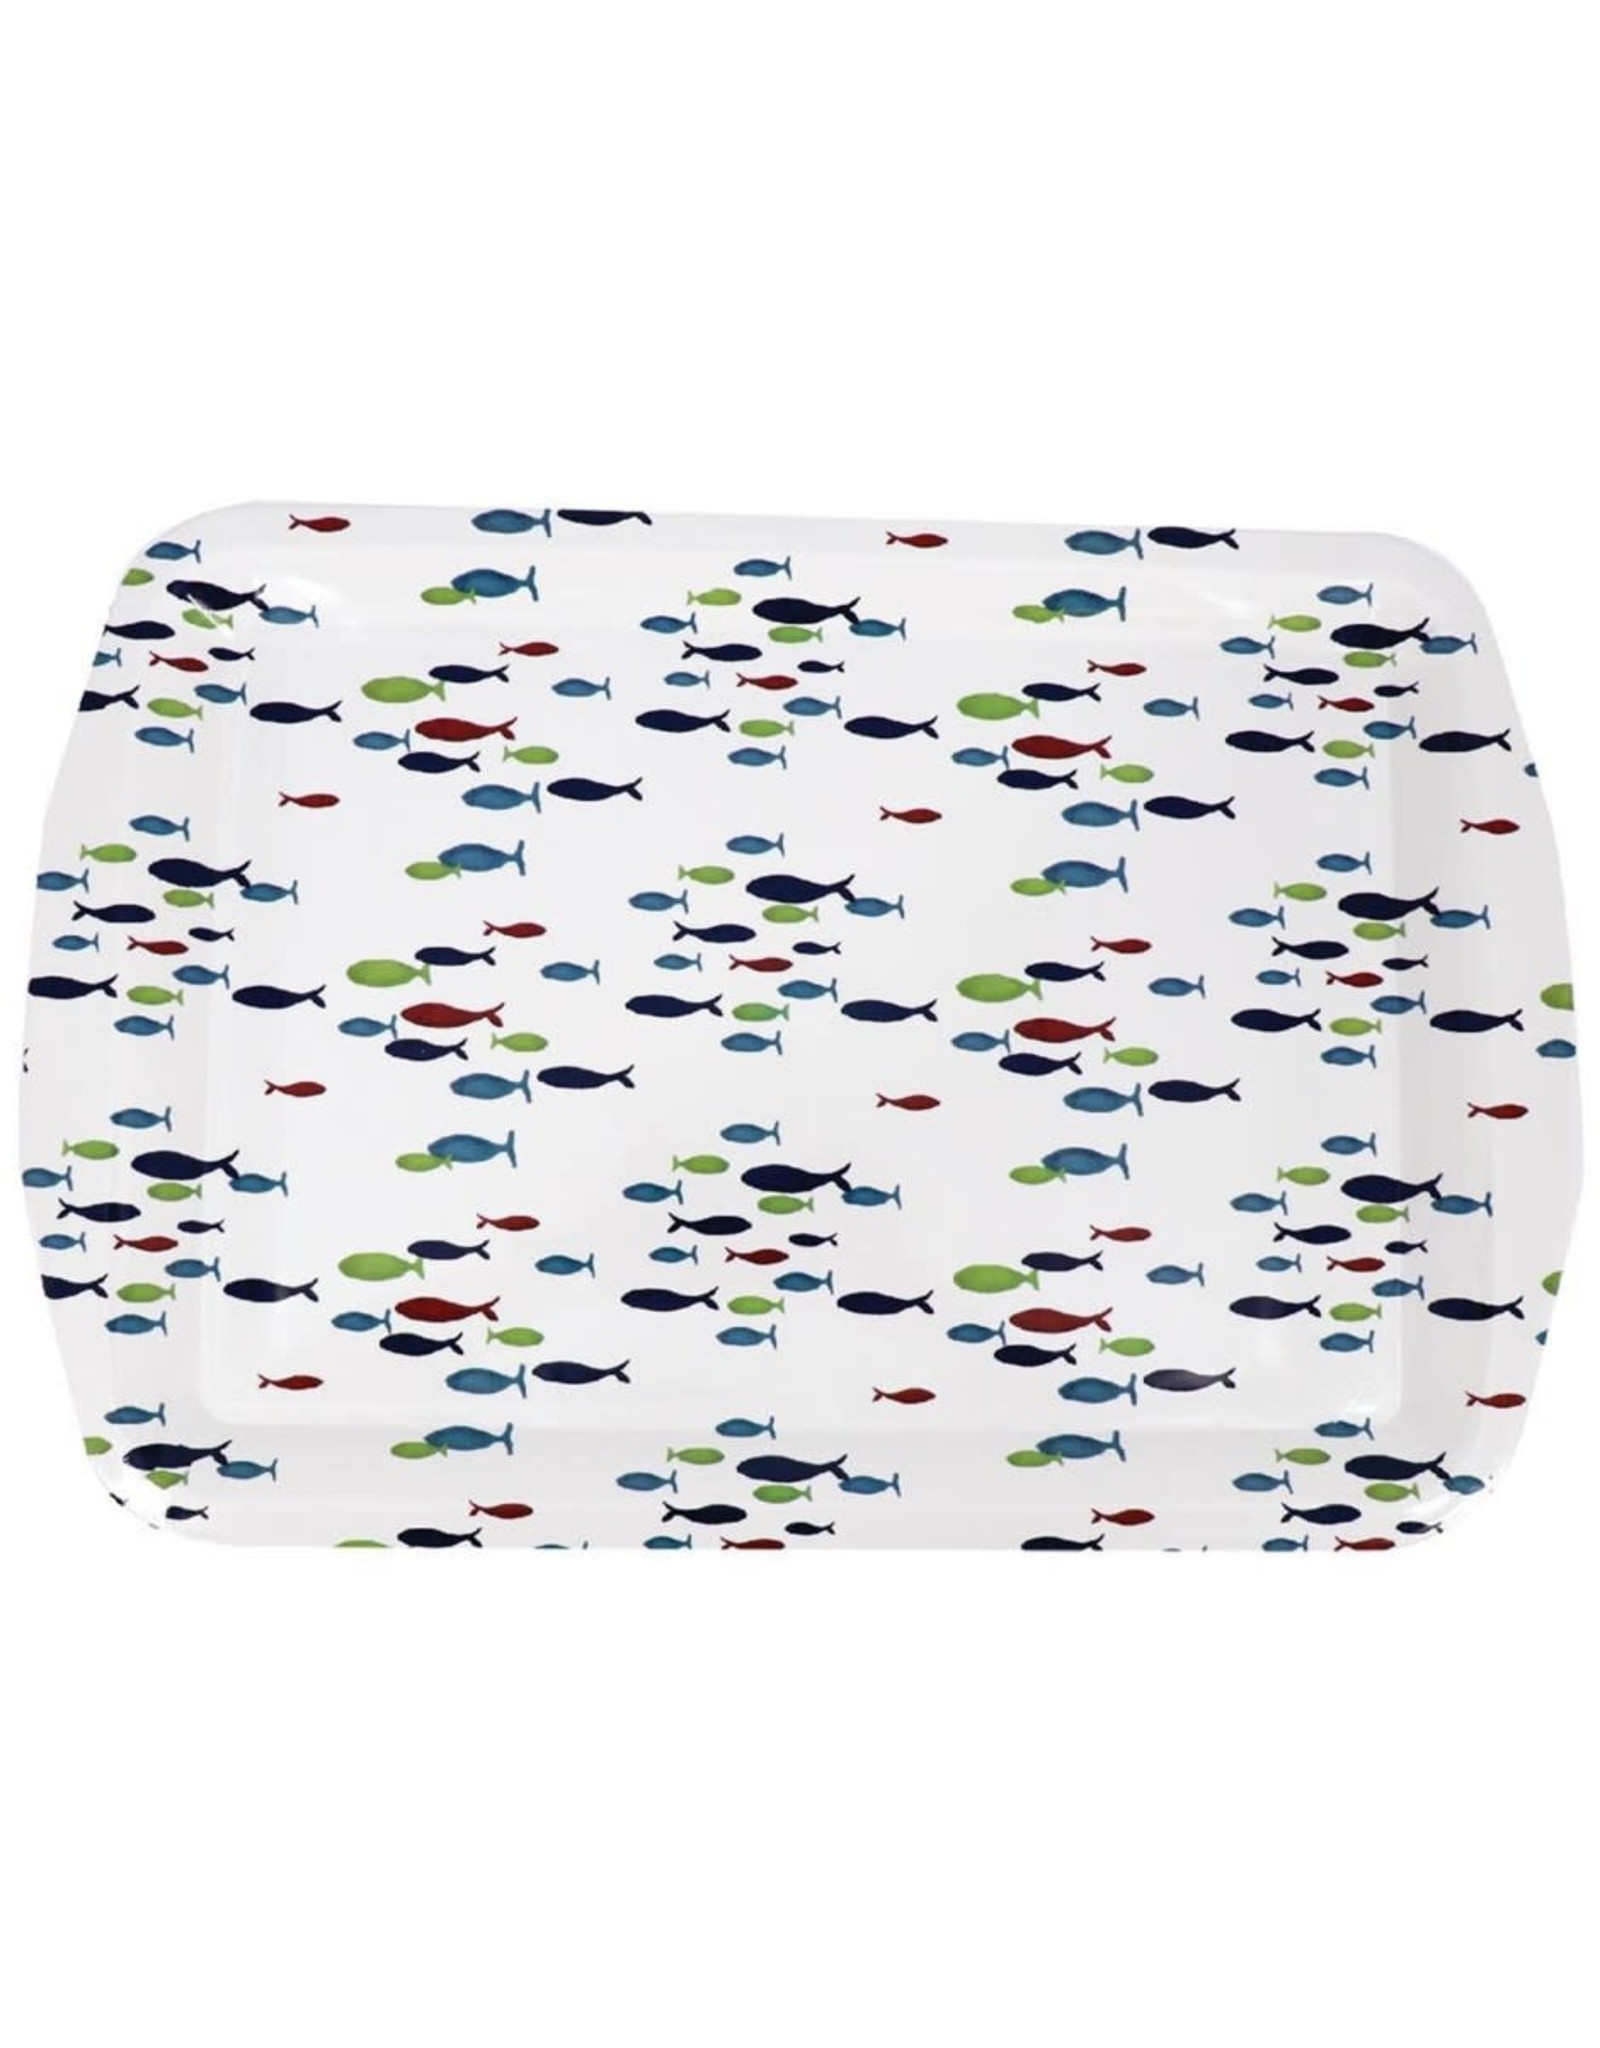 """Little Fish Serving Tray 19.5""""x12.5"""""""